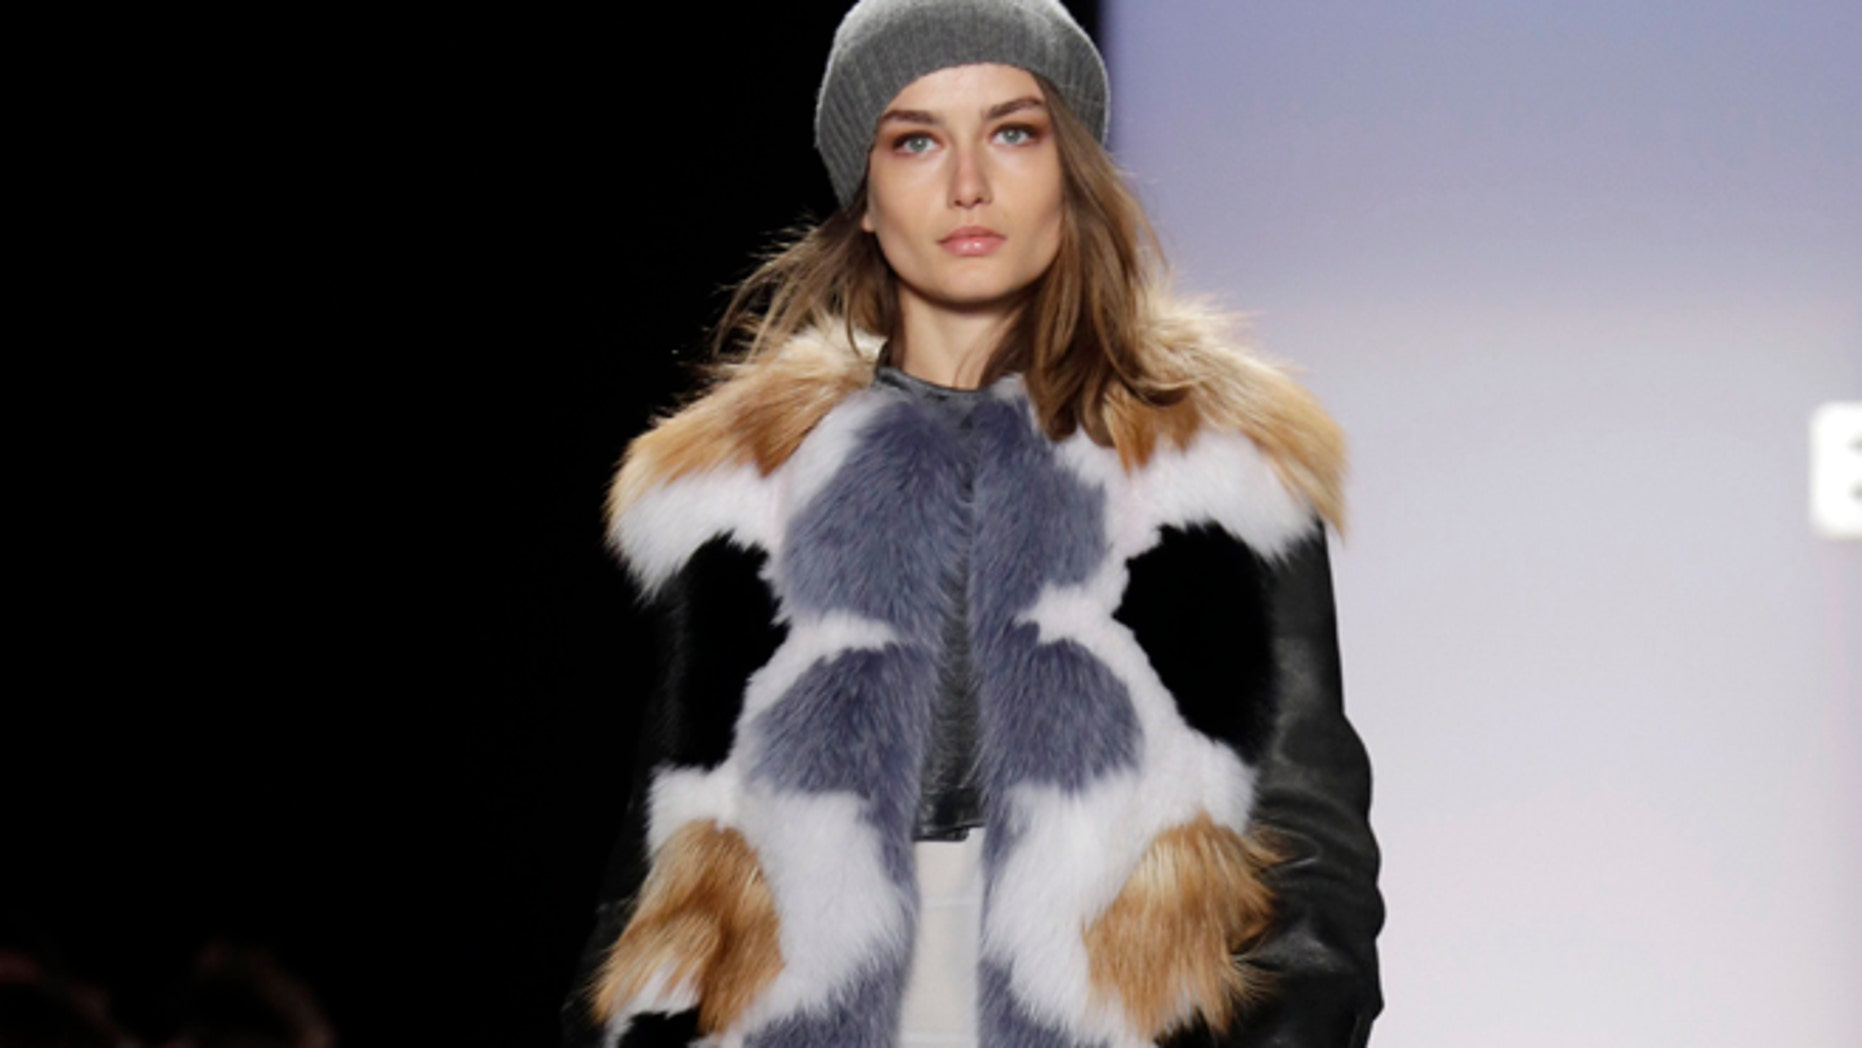 The BCBG Max Azria Fall 2013 collection is modeled during Fashion Week in New York on Thursday, Feb. 7, 2013.